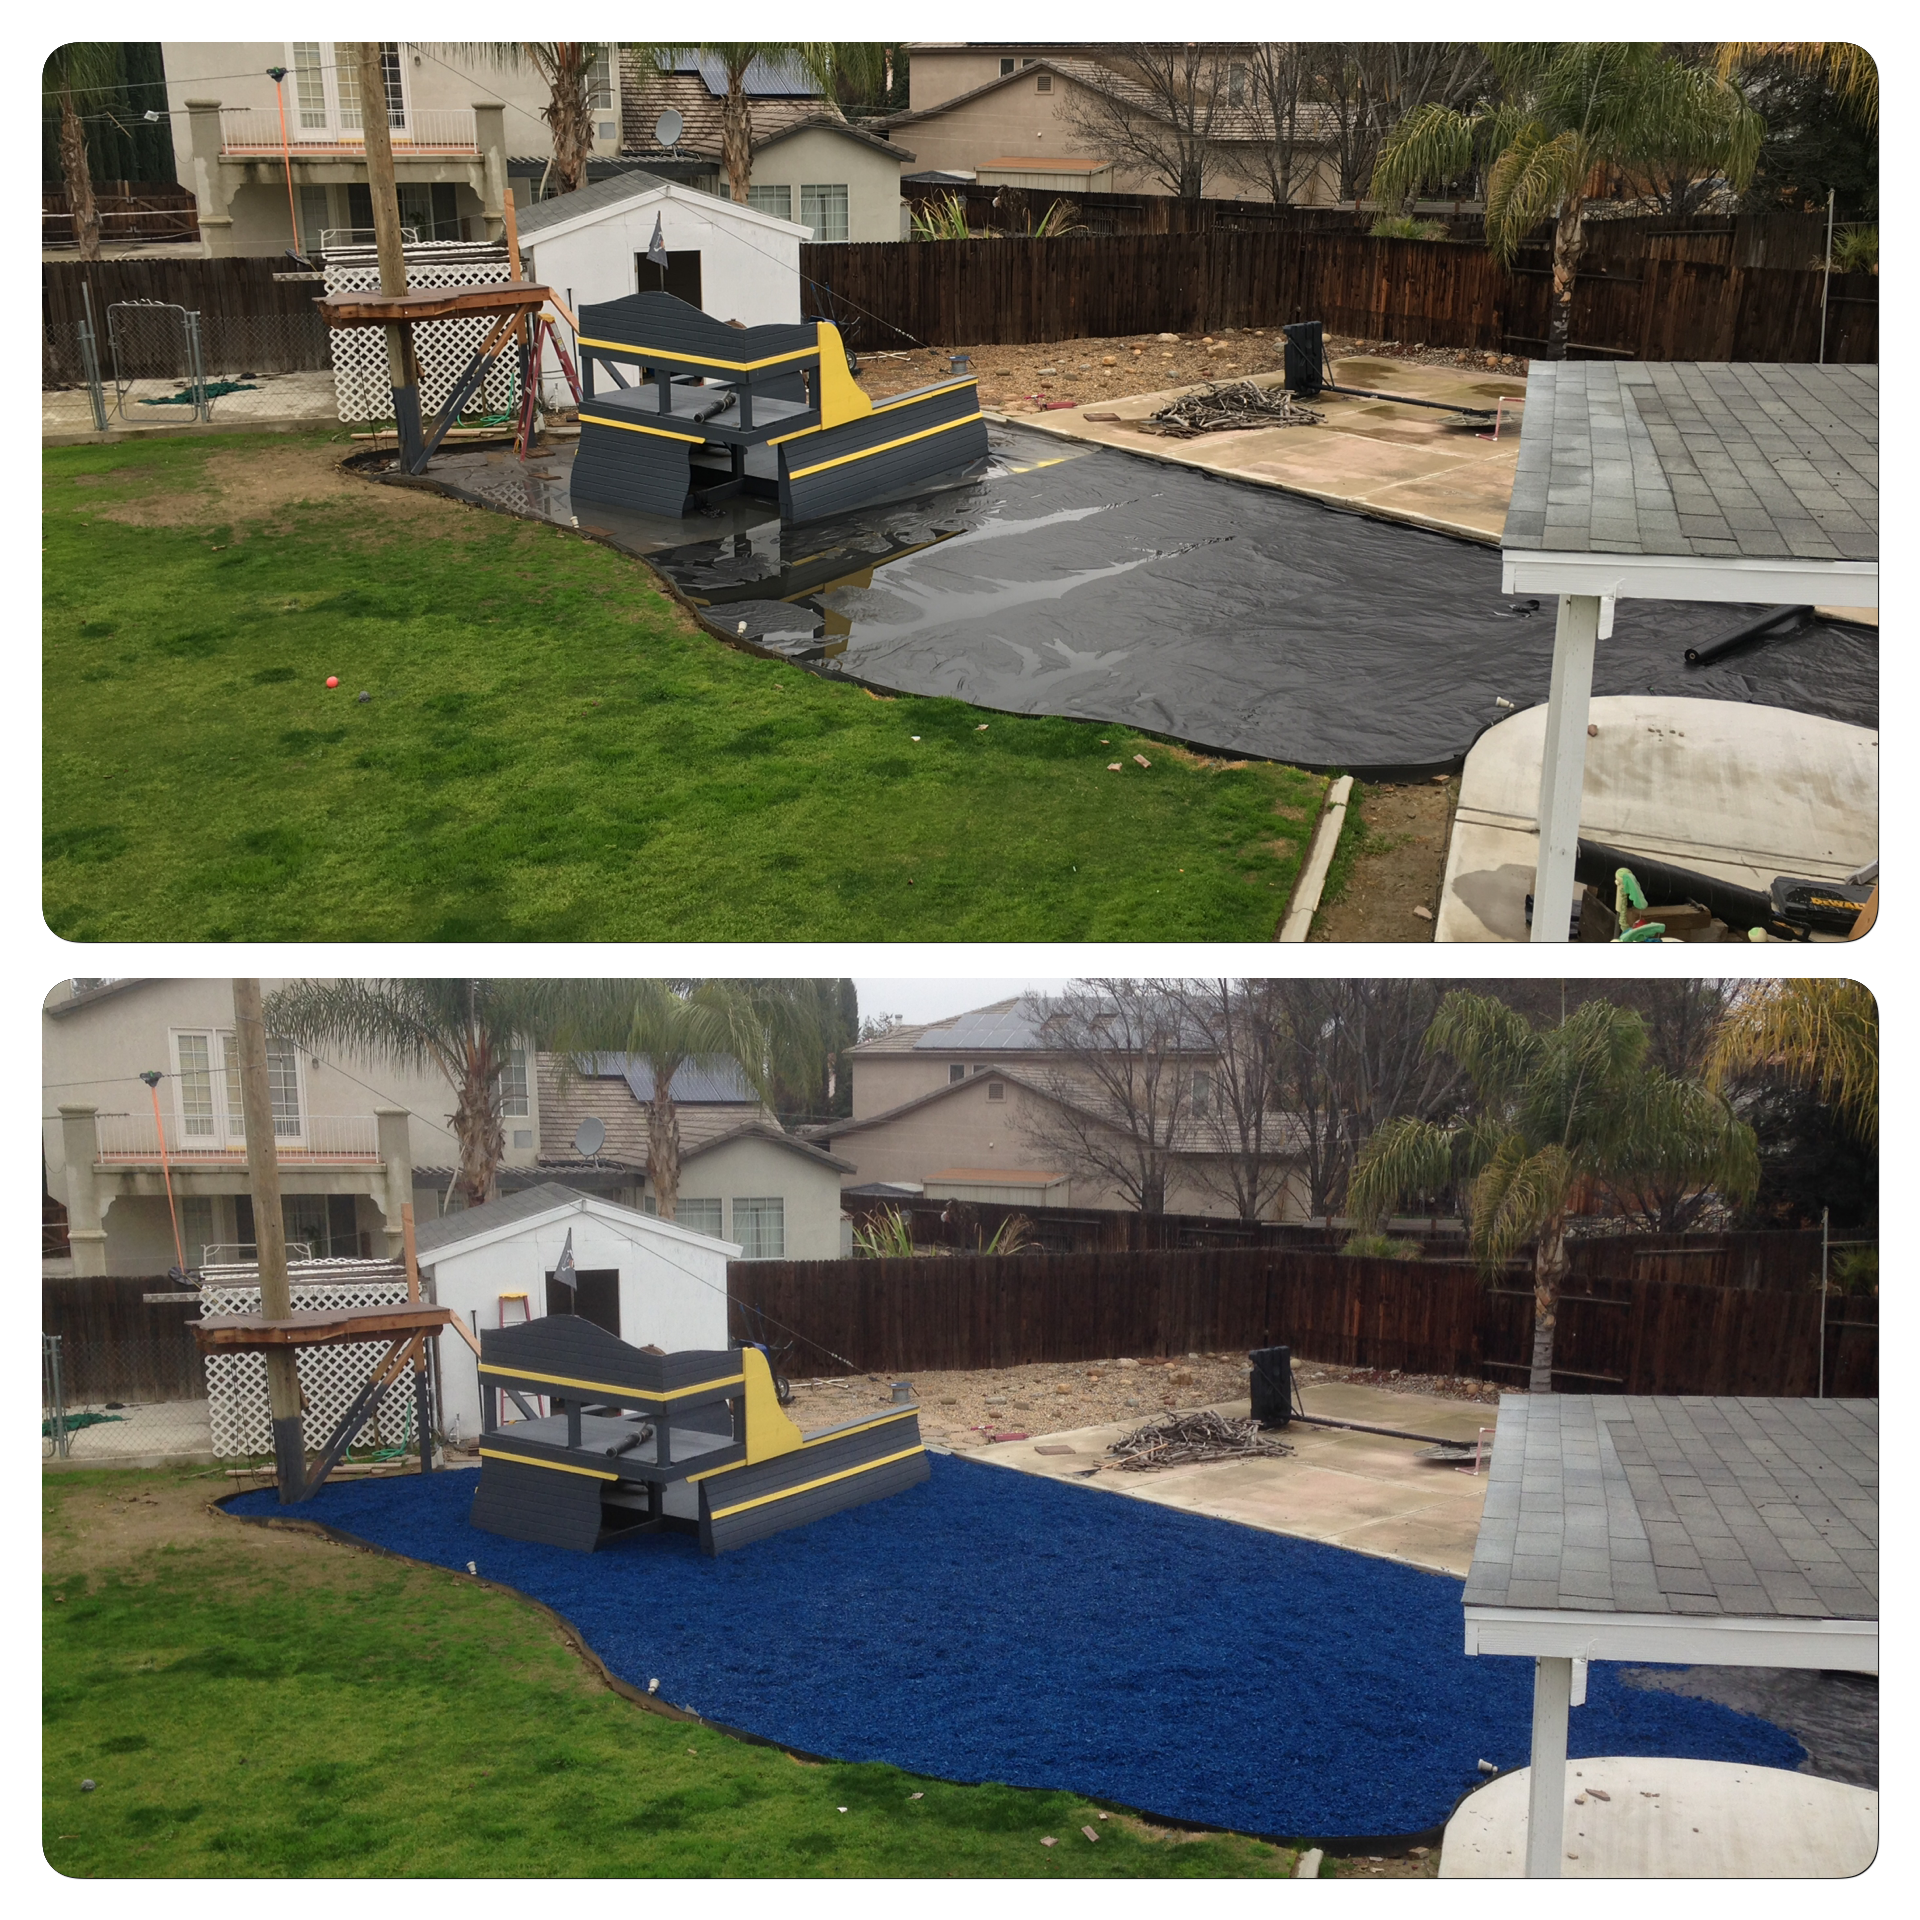 before and after of blue rubber mulch playground with sunken